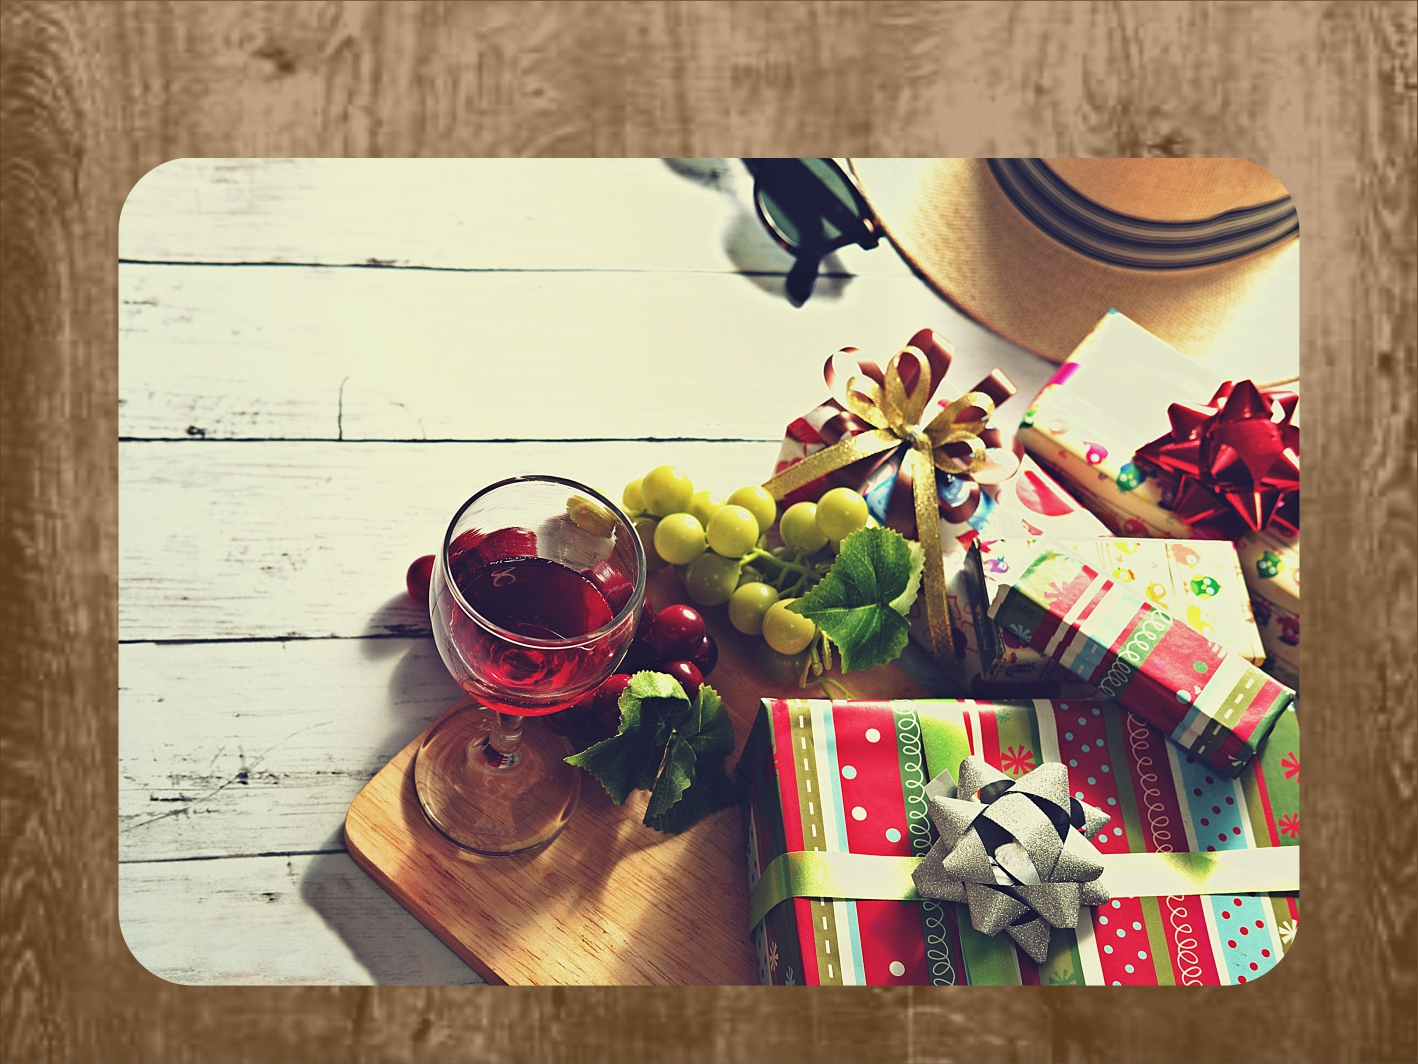 Vánoční prostírání; Placemats on the table; Vianočné prestieranie; Christmas table setting